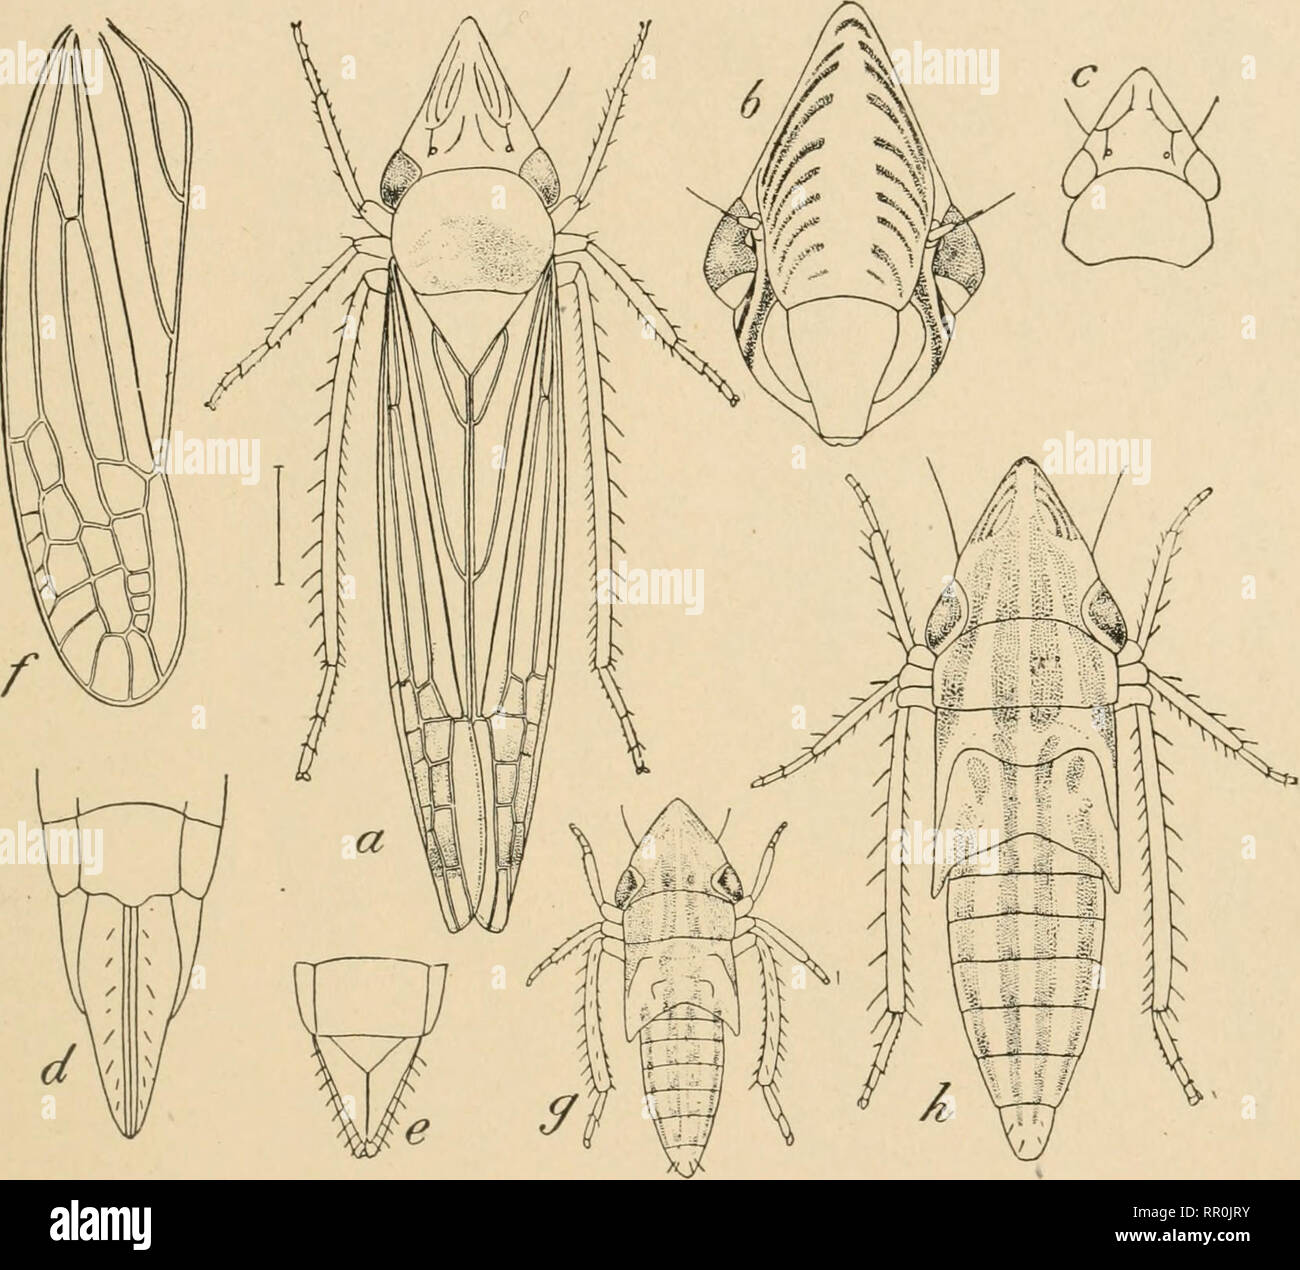 hight resolution of family tettigoniellid 109 out the temperate regions among them a particular species known as the sharpshooter oncometopia undata